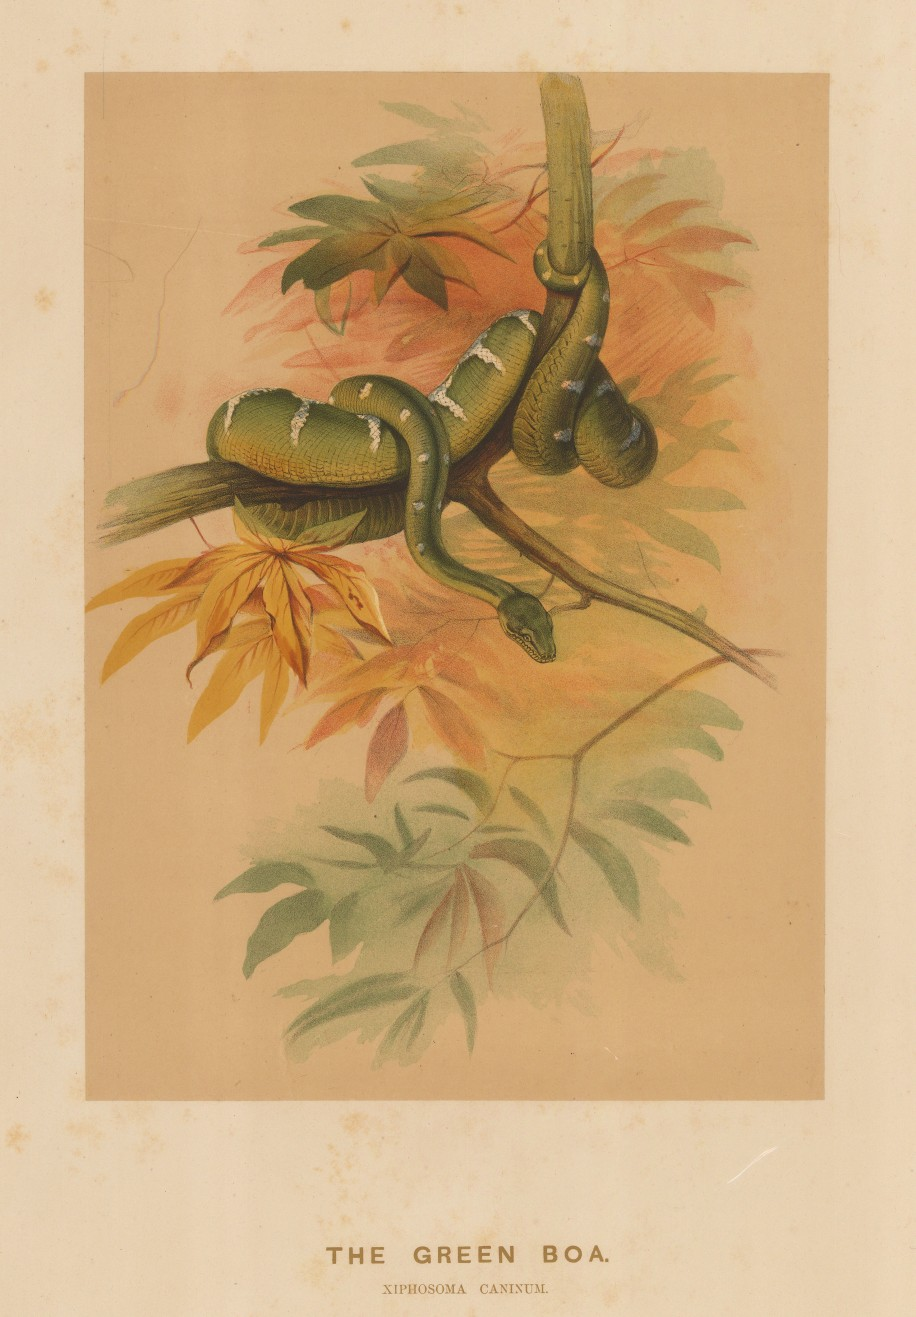 Boa: Green Boa. Niphosoma caninum. Captured in South America and drawn from life at the society's Vivarium..